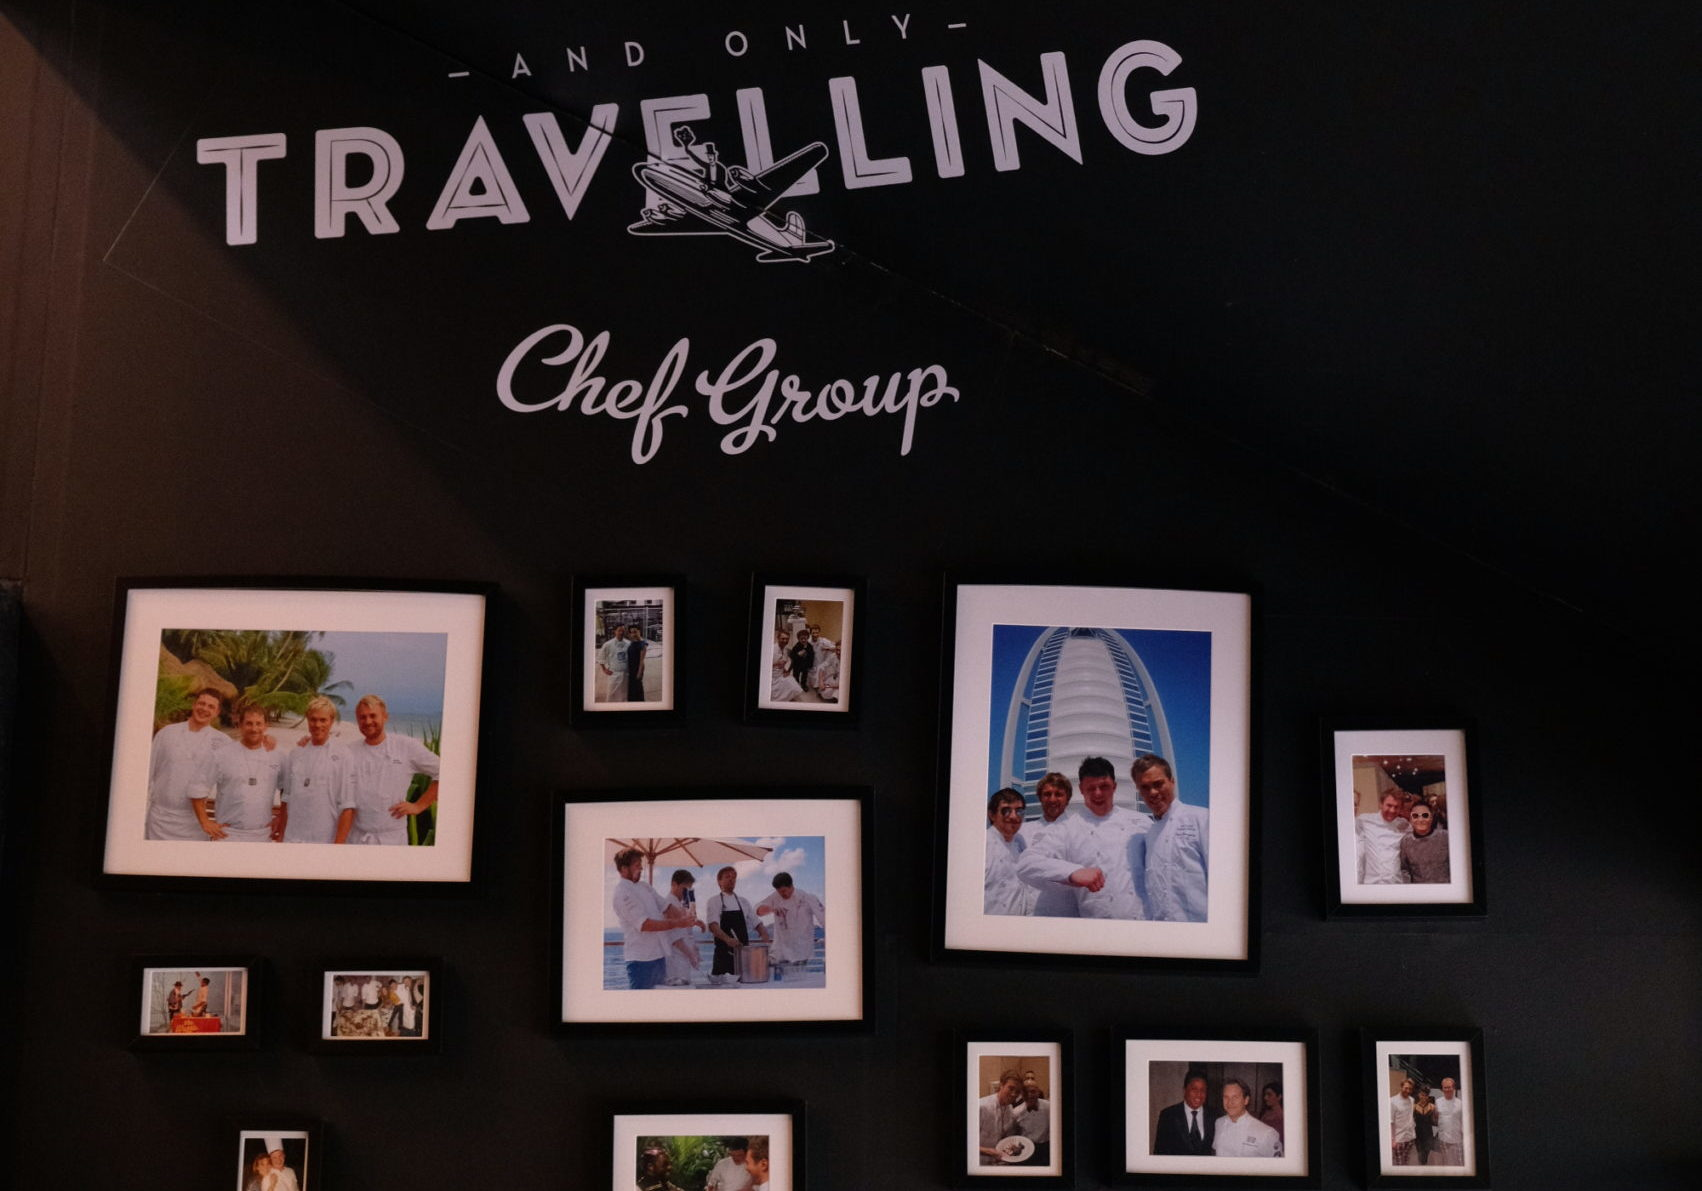 flying-culinary-circus-worlds-first-travelling-chef-group-vegg-lokale